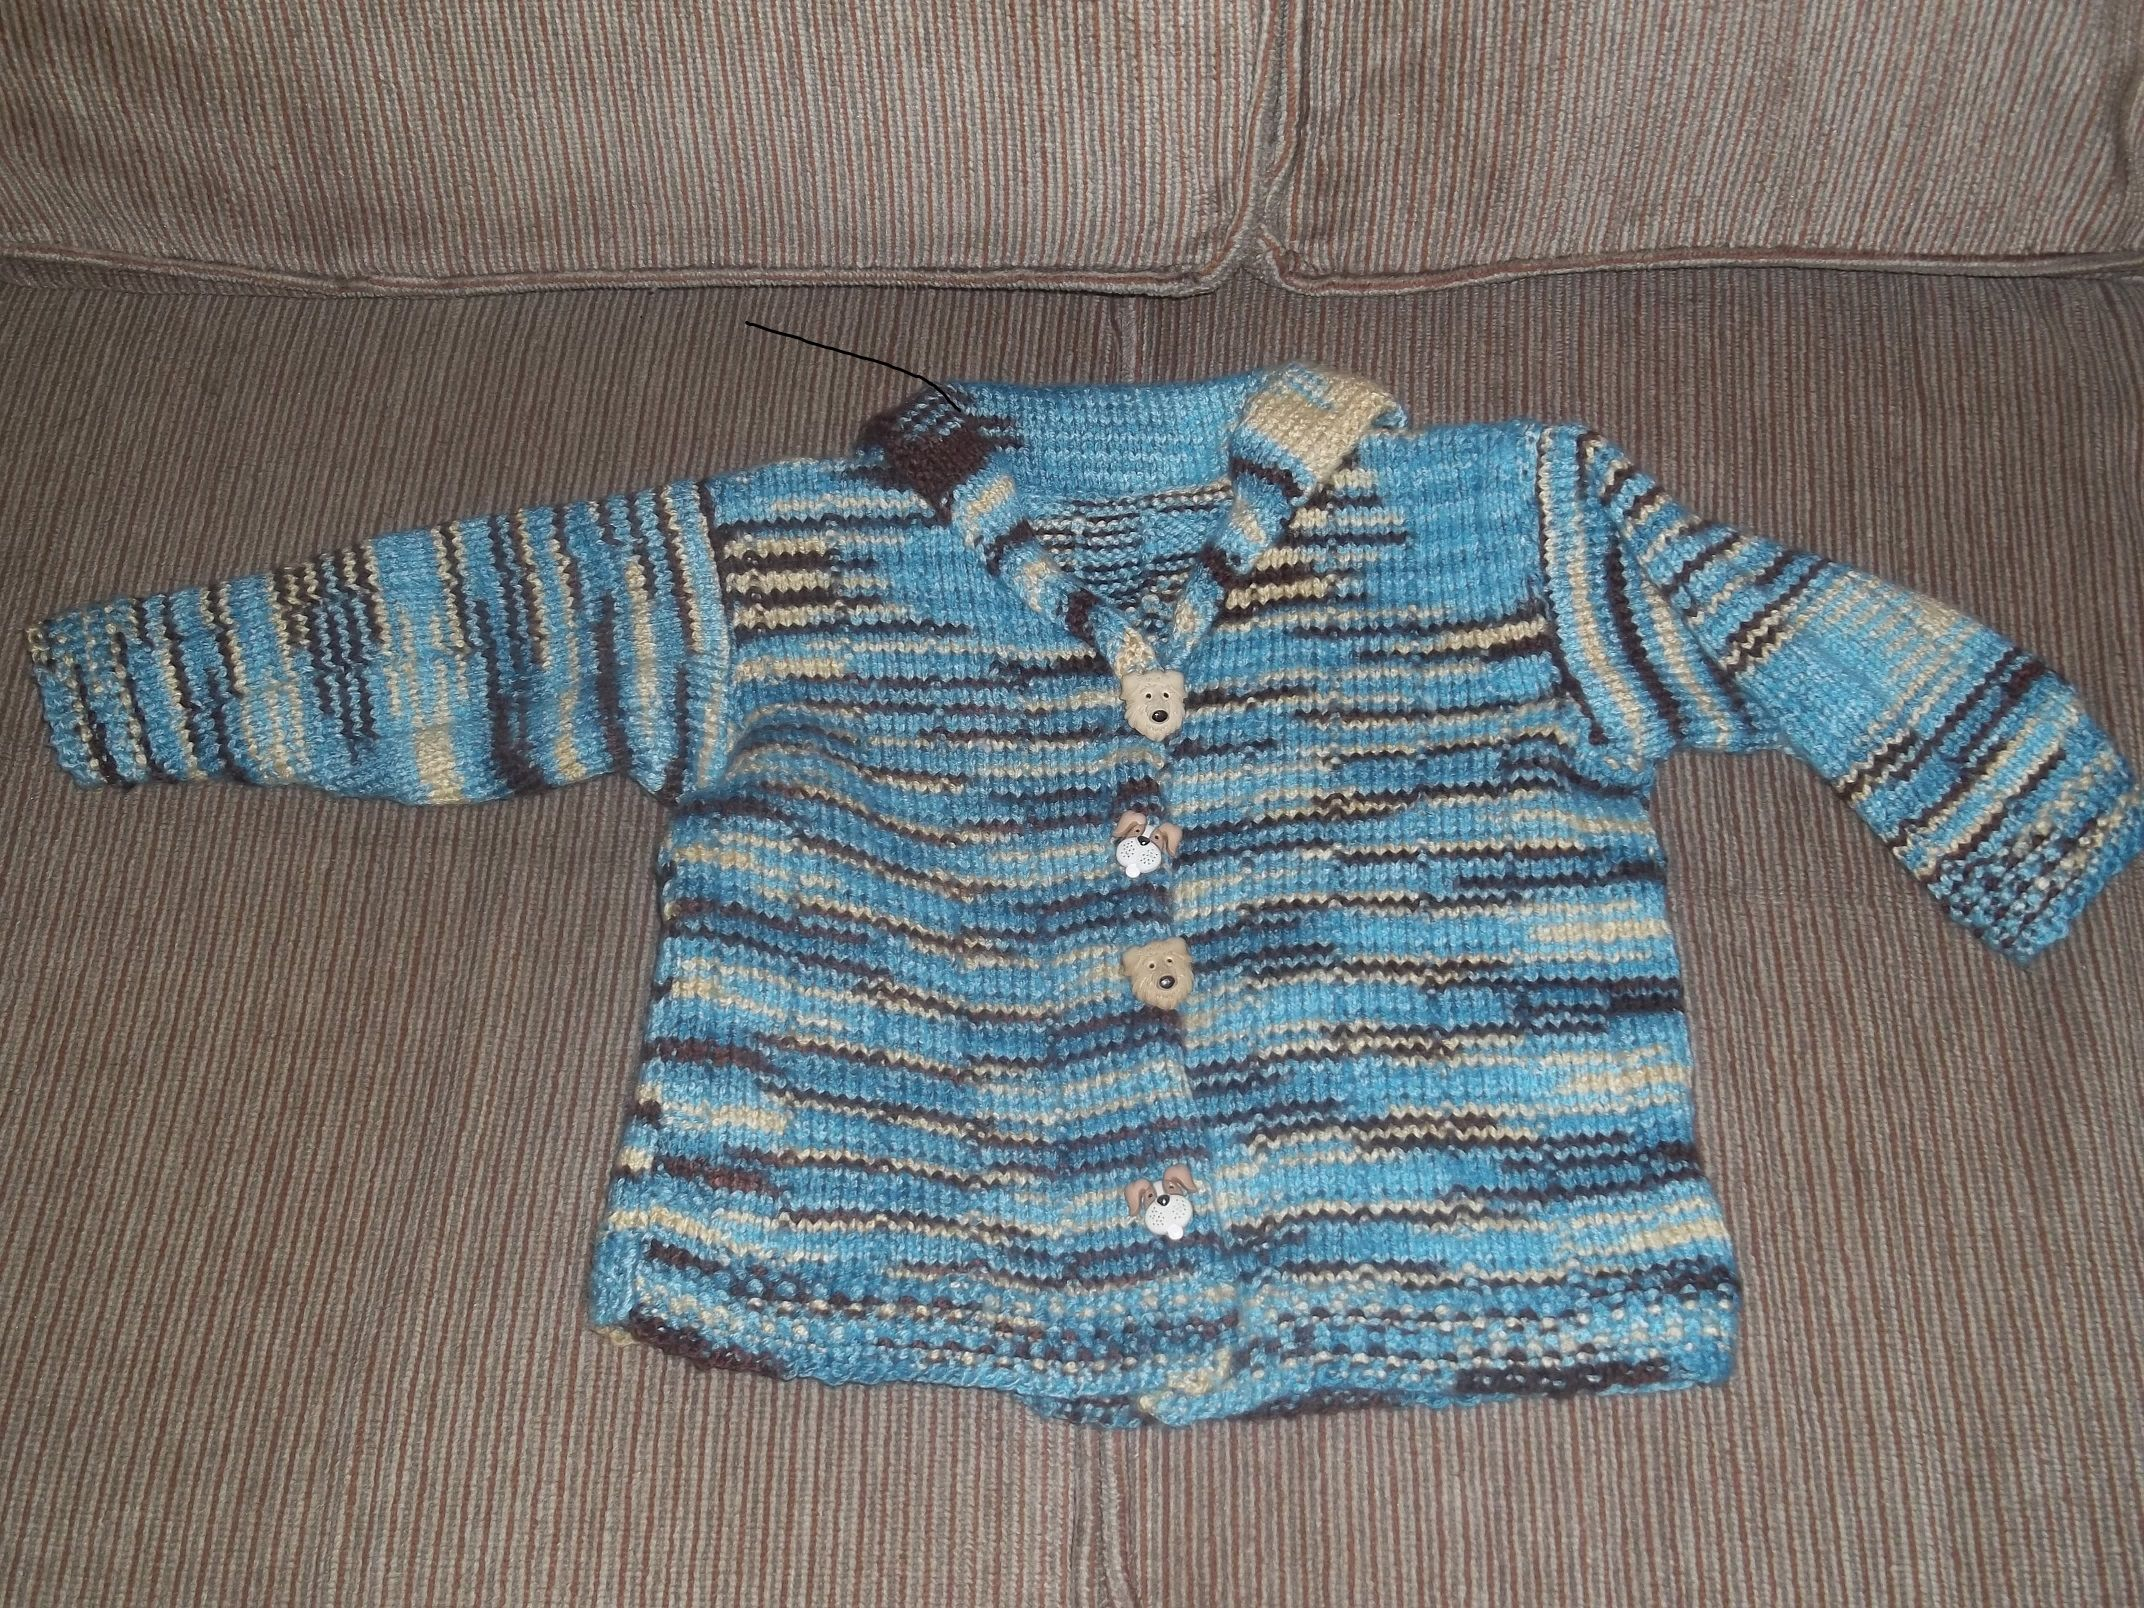 I knit this sweater for my grandson